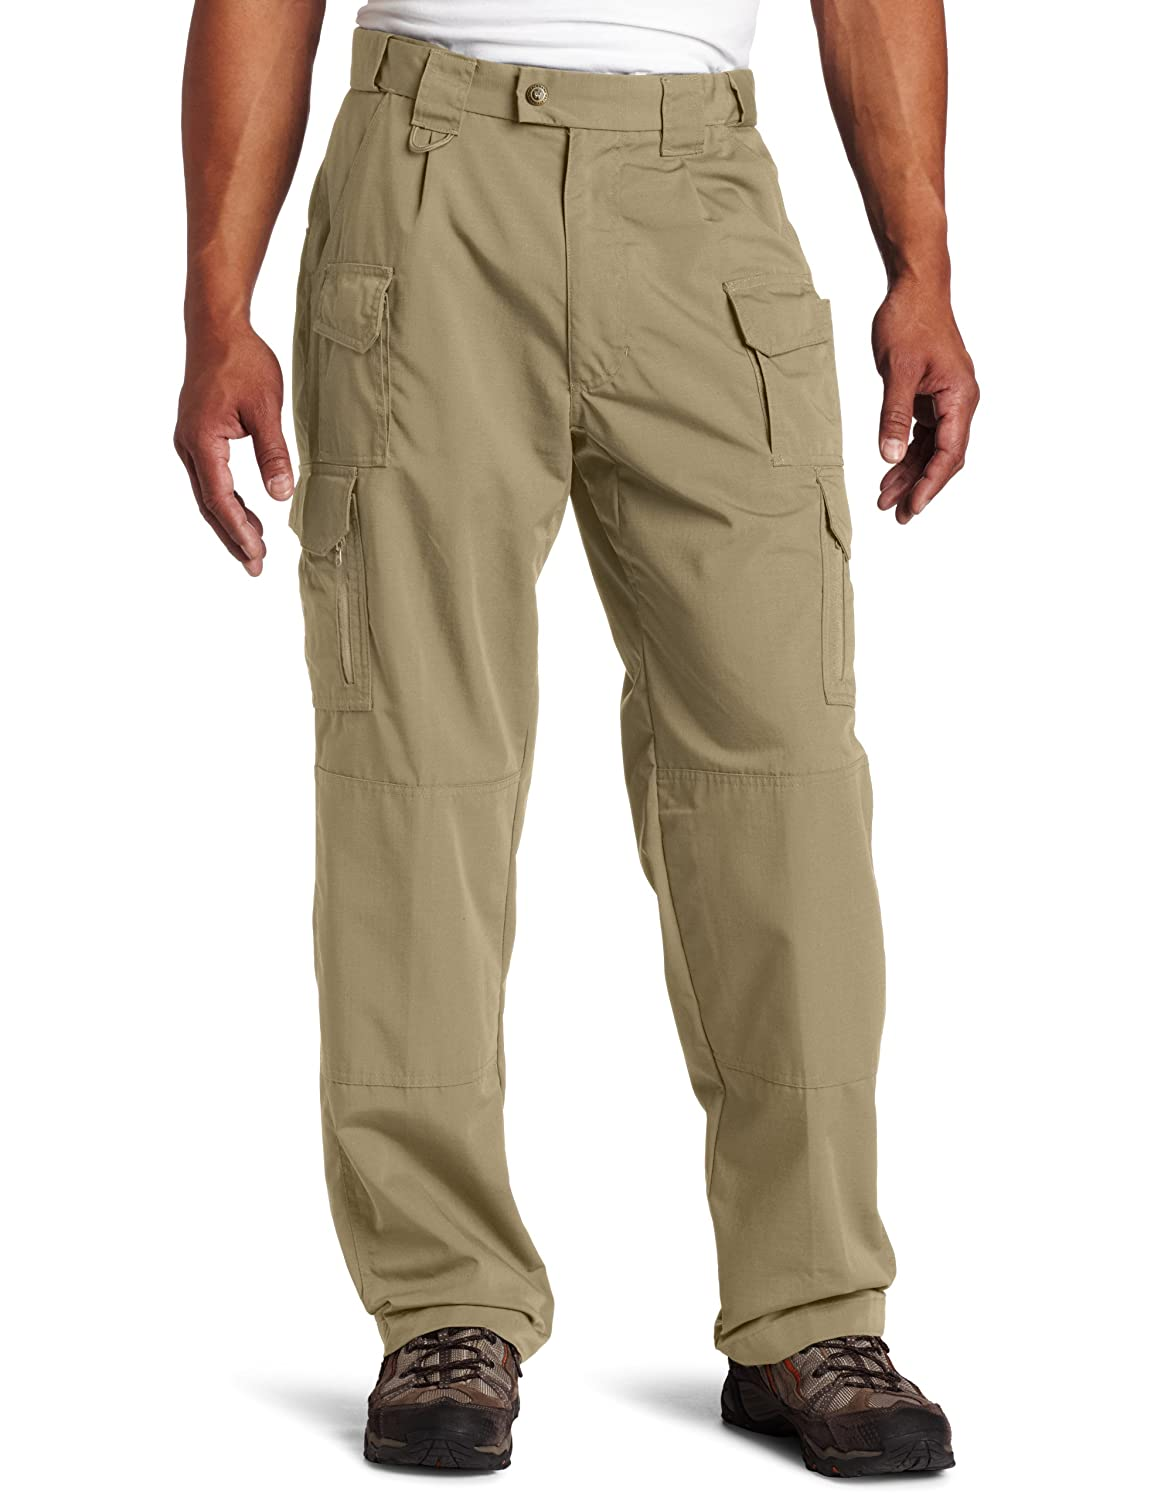 Amazon.com: BLACKHAWK! Men's Lightweight Tactical Pants: Sports ...